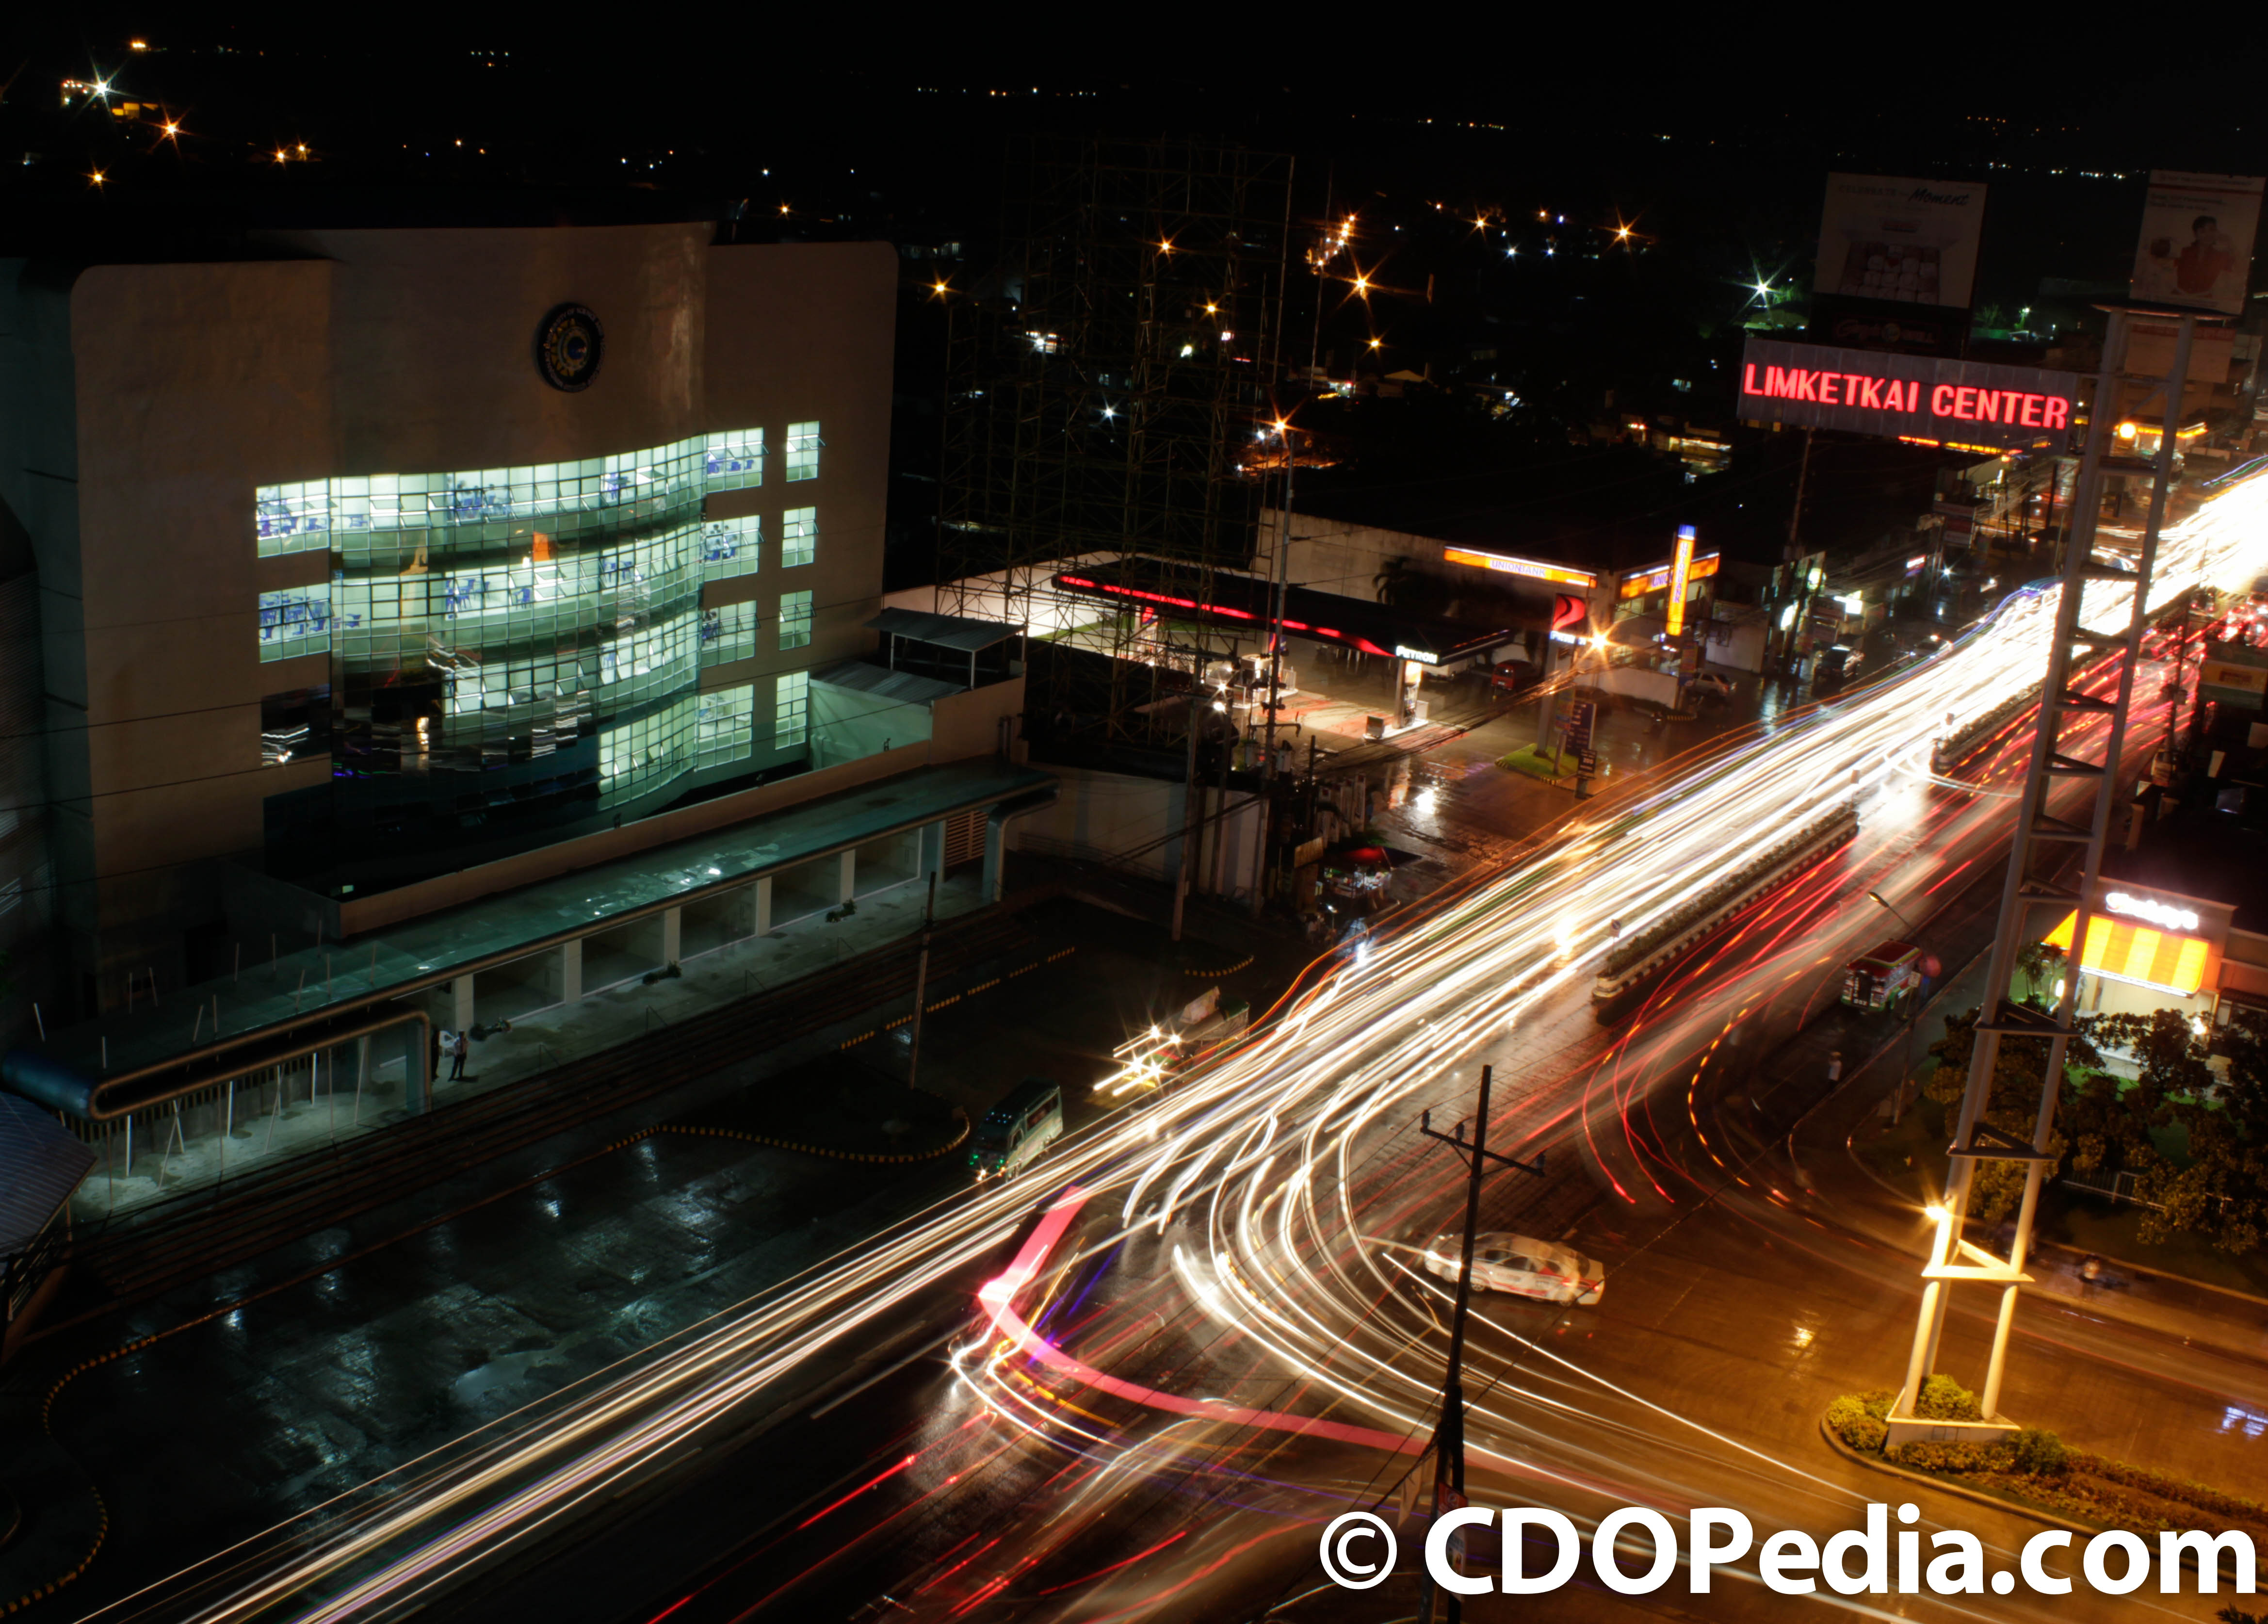 Night Photography, Cagayan de Oro, high rising towers, Cagayan de Oro high rising towers, Cagayan de Oro Malls, CM Recto Street, Mindanao University of Science and Technology, Luxe hotel